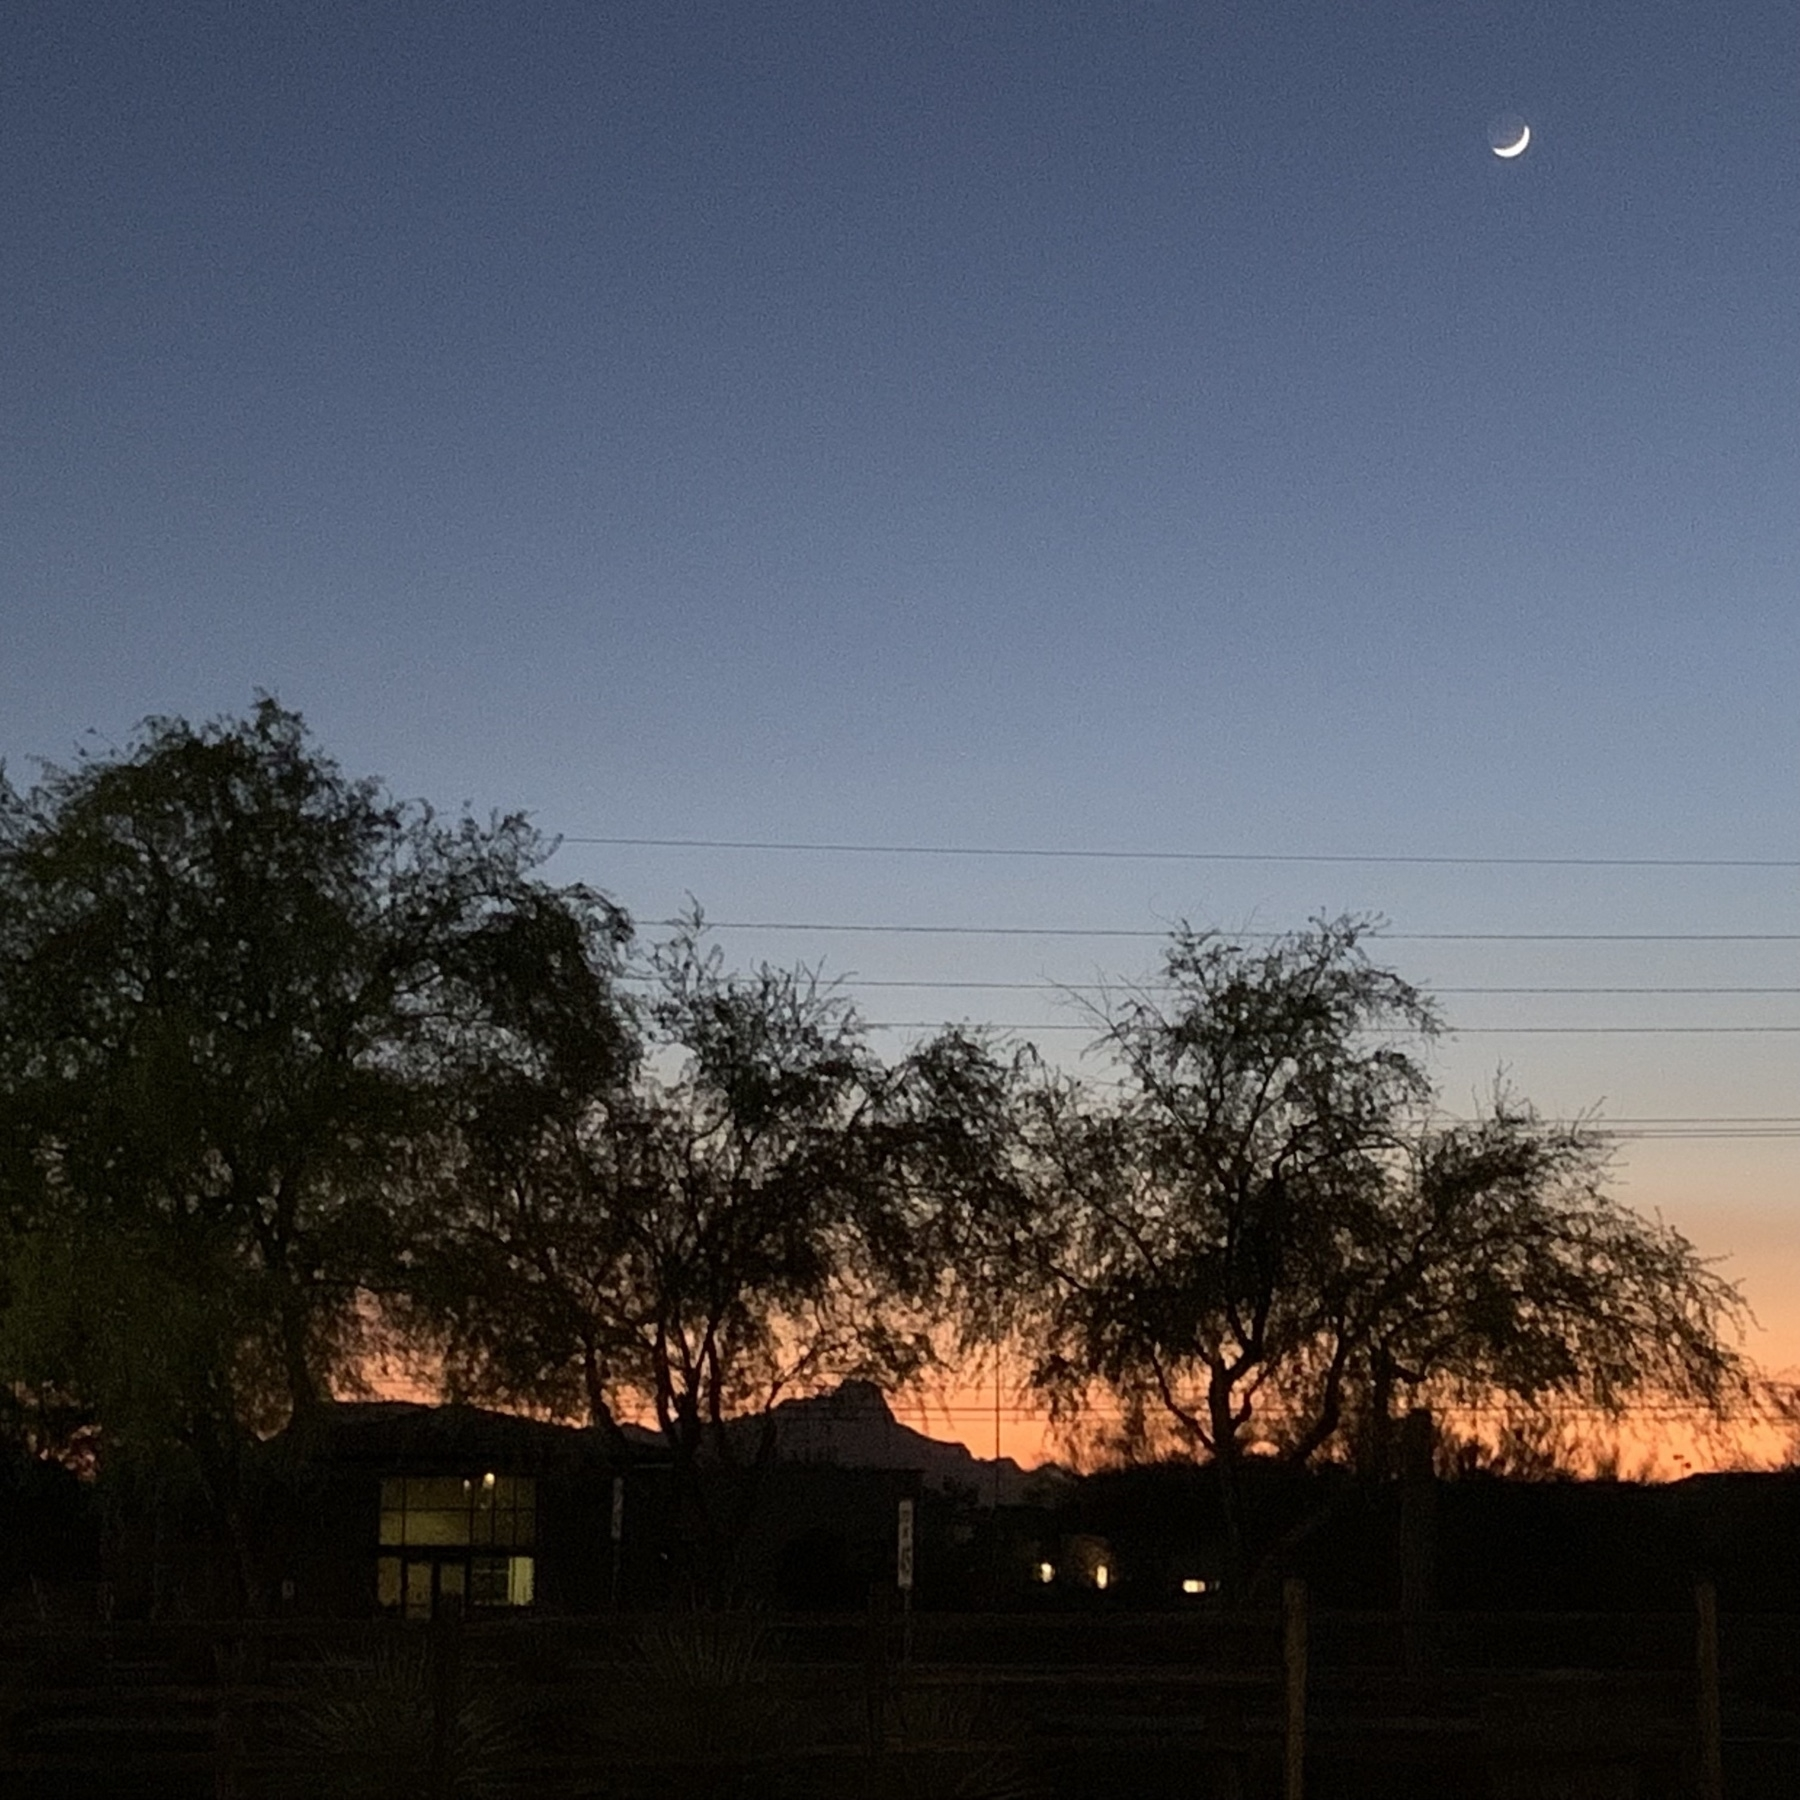 sunset with crescent moon